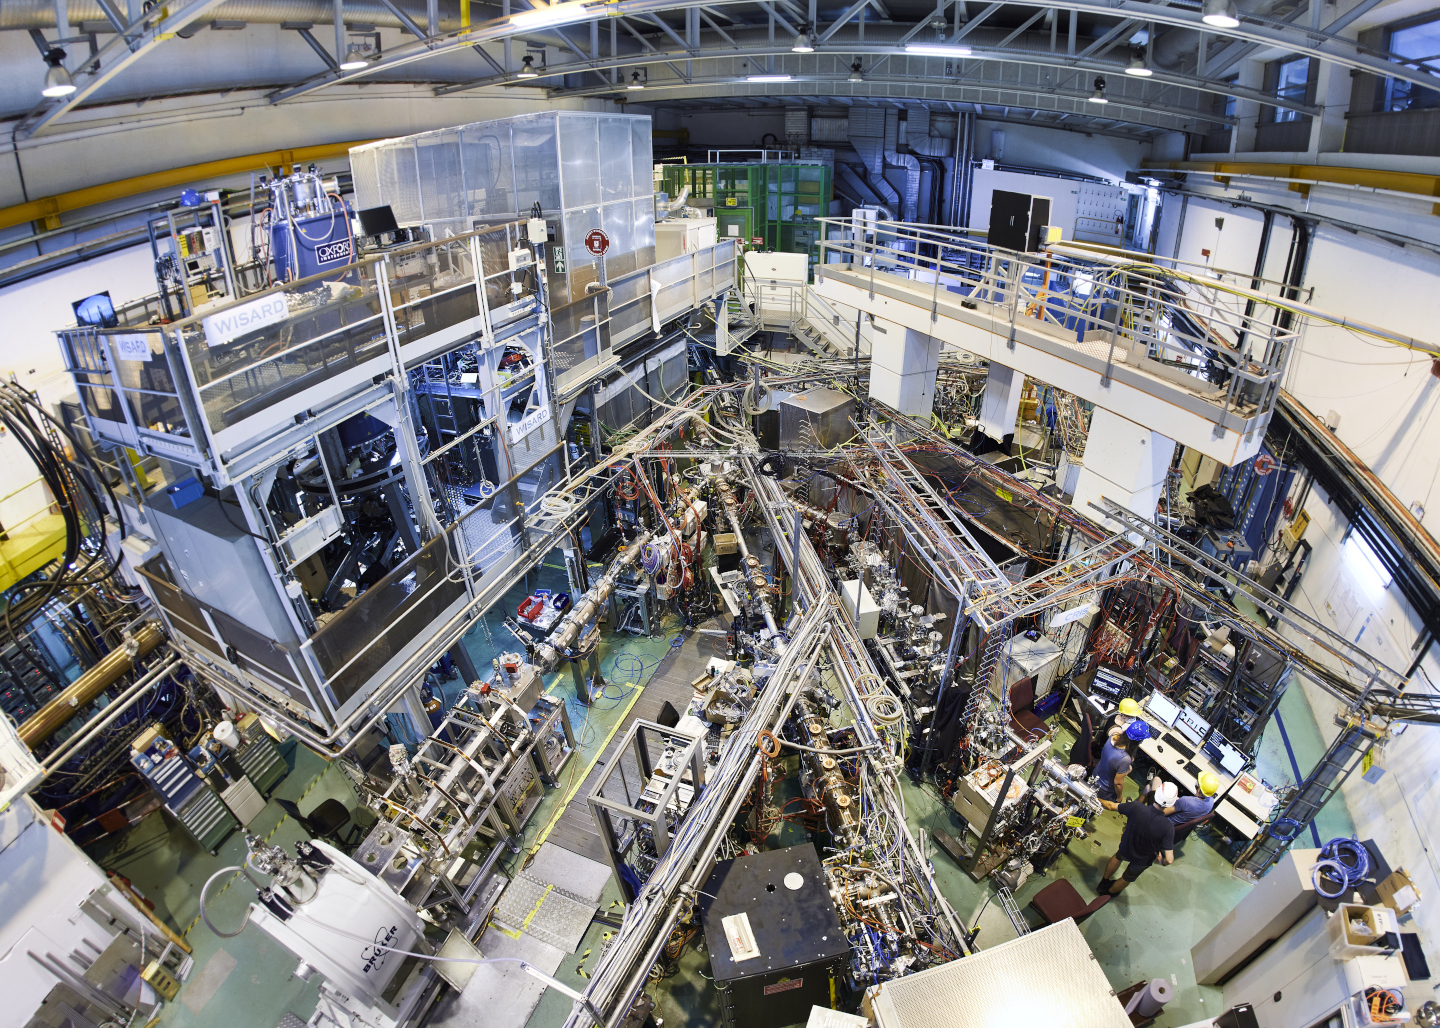 From antimatter to heavy isotopes, data-taking in physics facilities is resuming at CERN